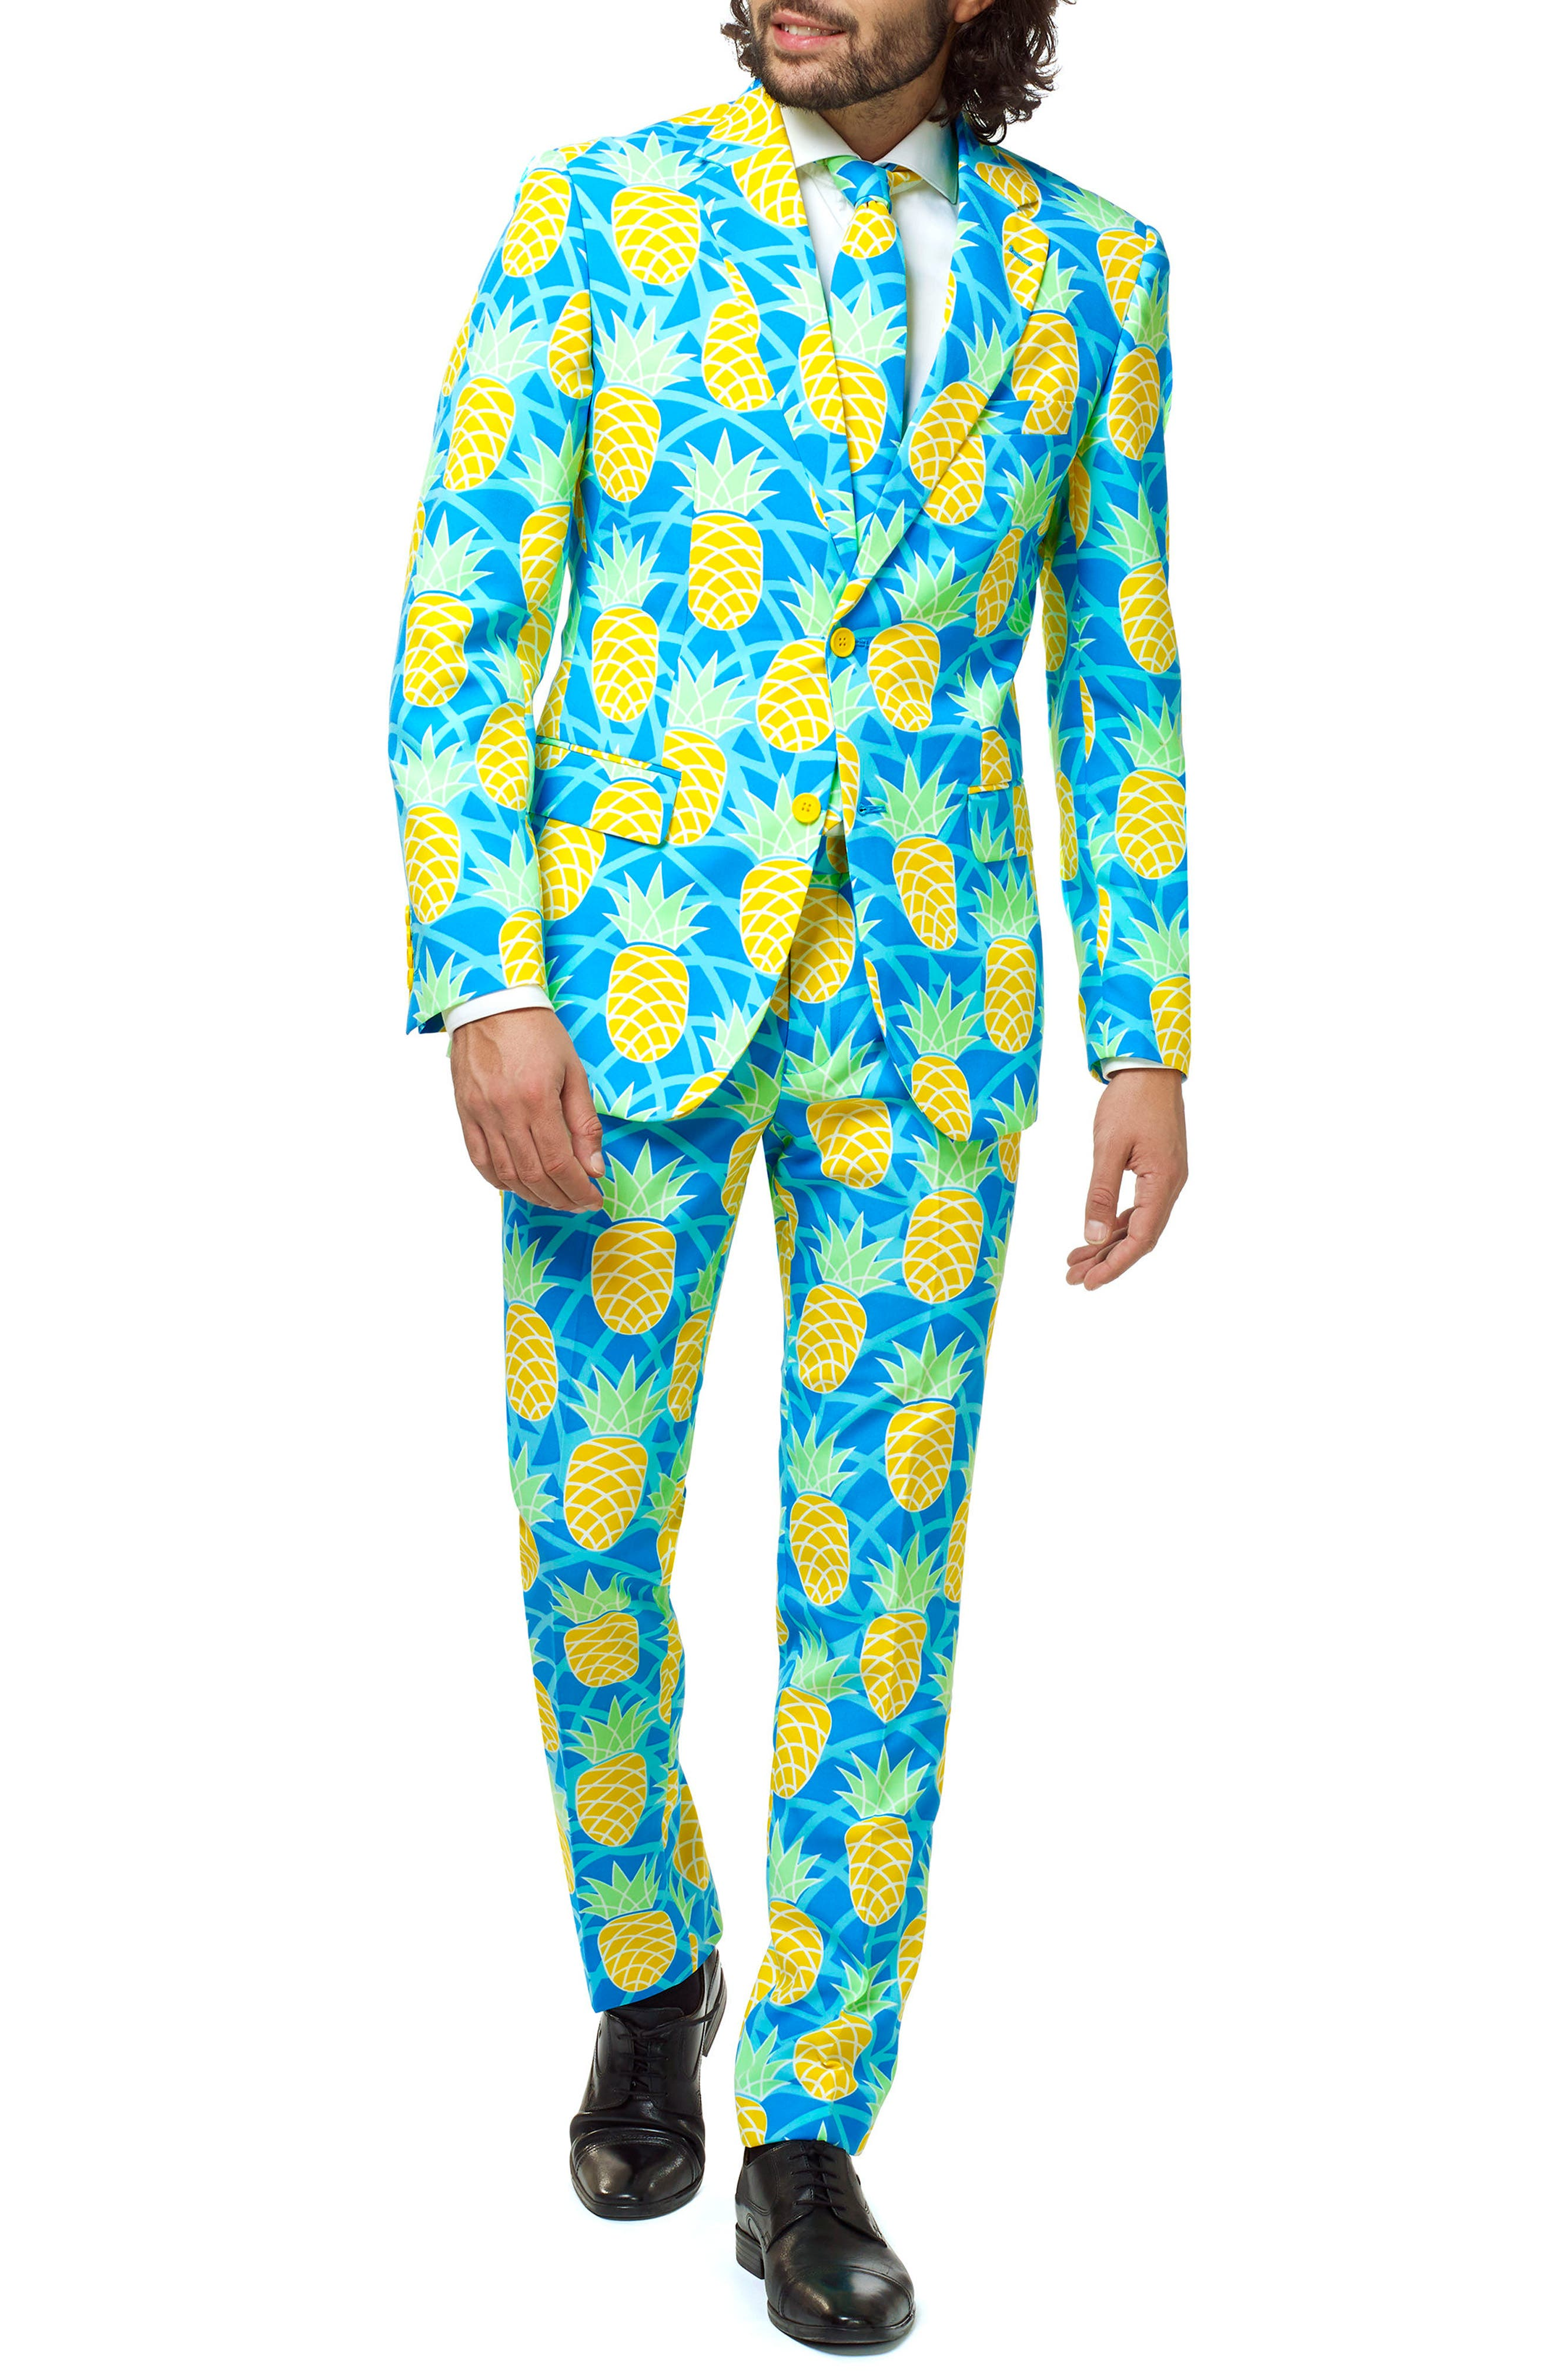 Summer Shineapple Trim Fit Two-Piece Suit with Tie,                         Main,                         color, Miscellaneous